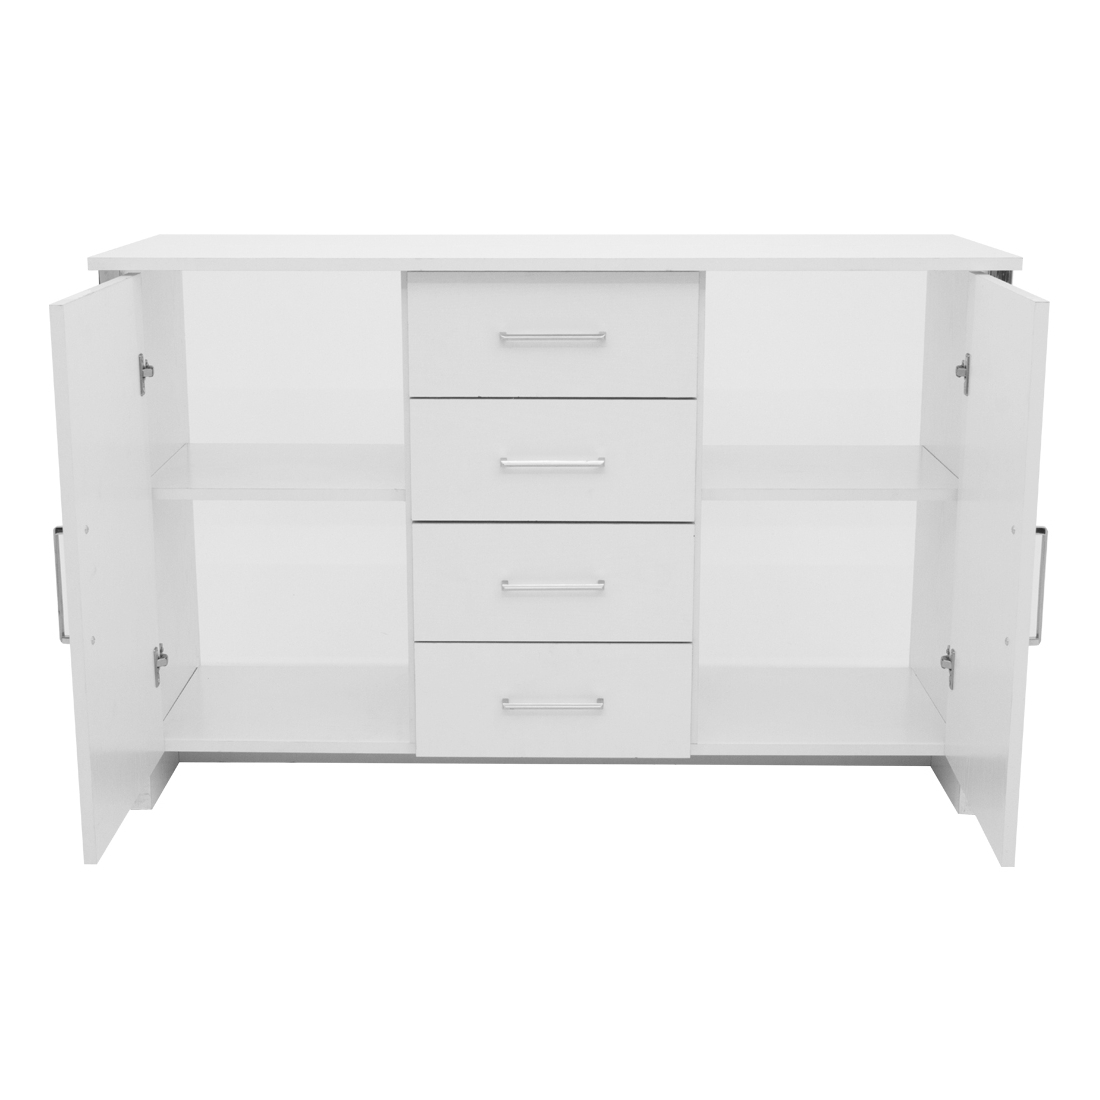 Gosport 2 Door / 4 Drawer Sideboard – White Ash — Online Pertaining To Current Gosport Sideboards (View 5 of 20)